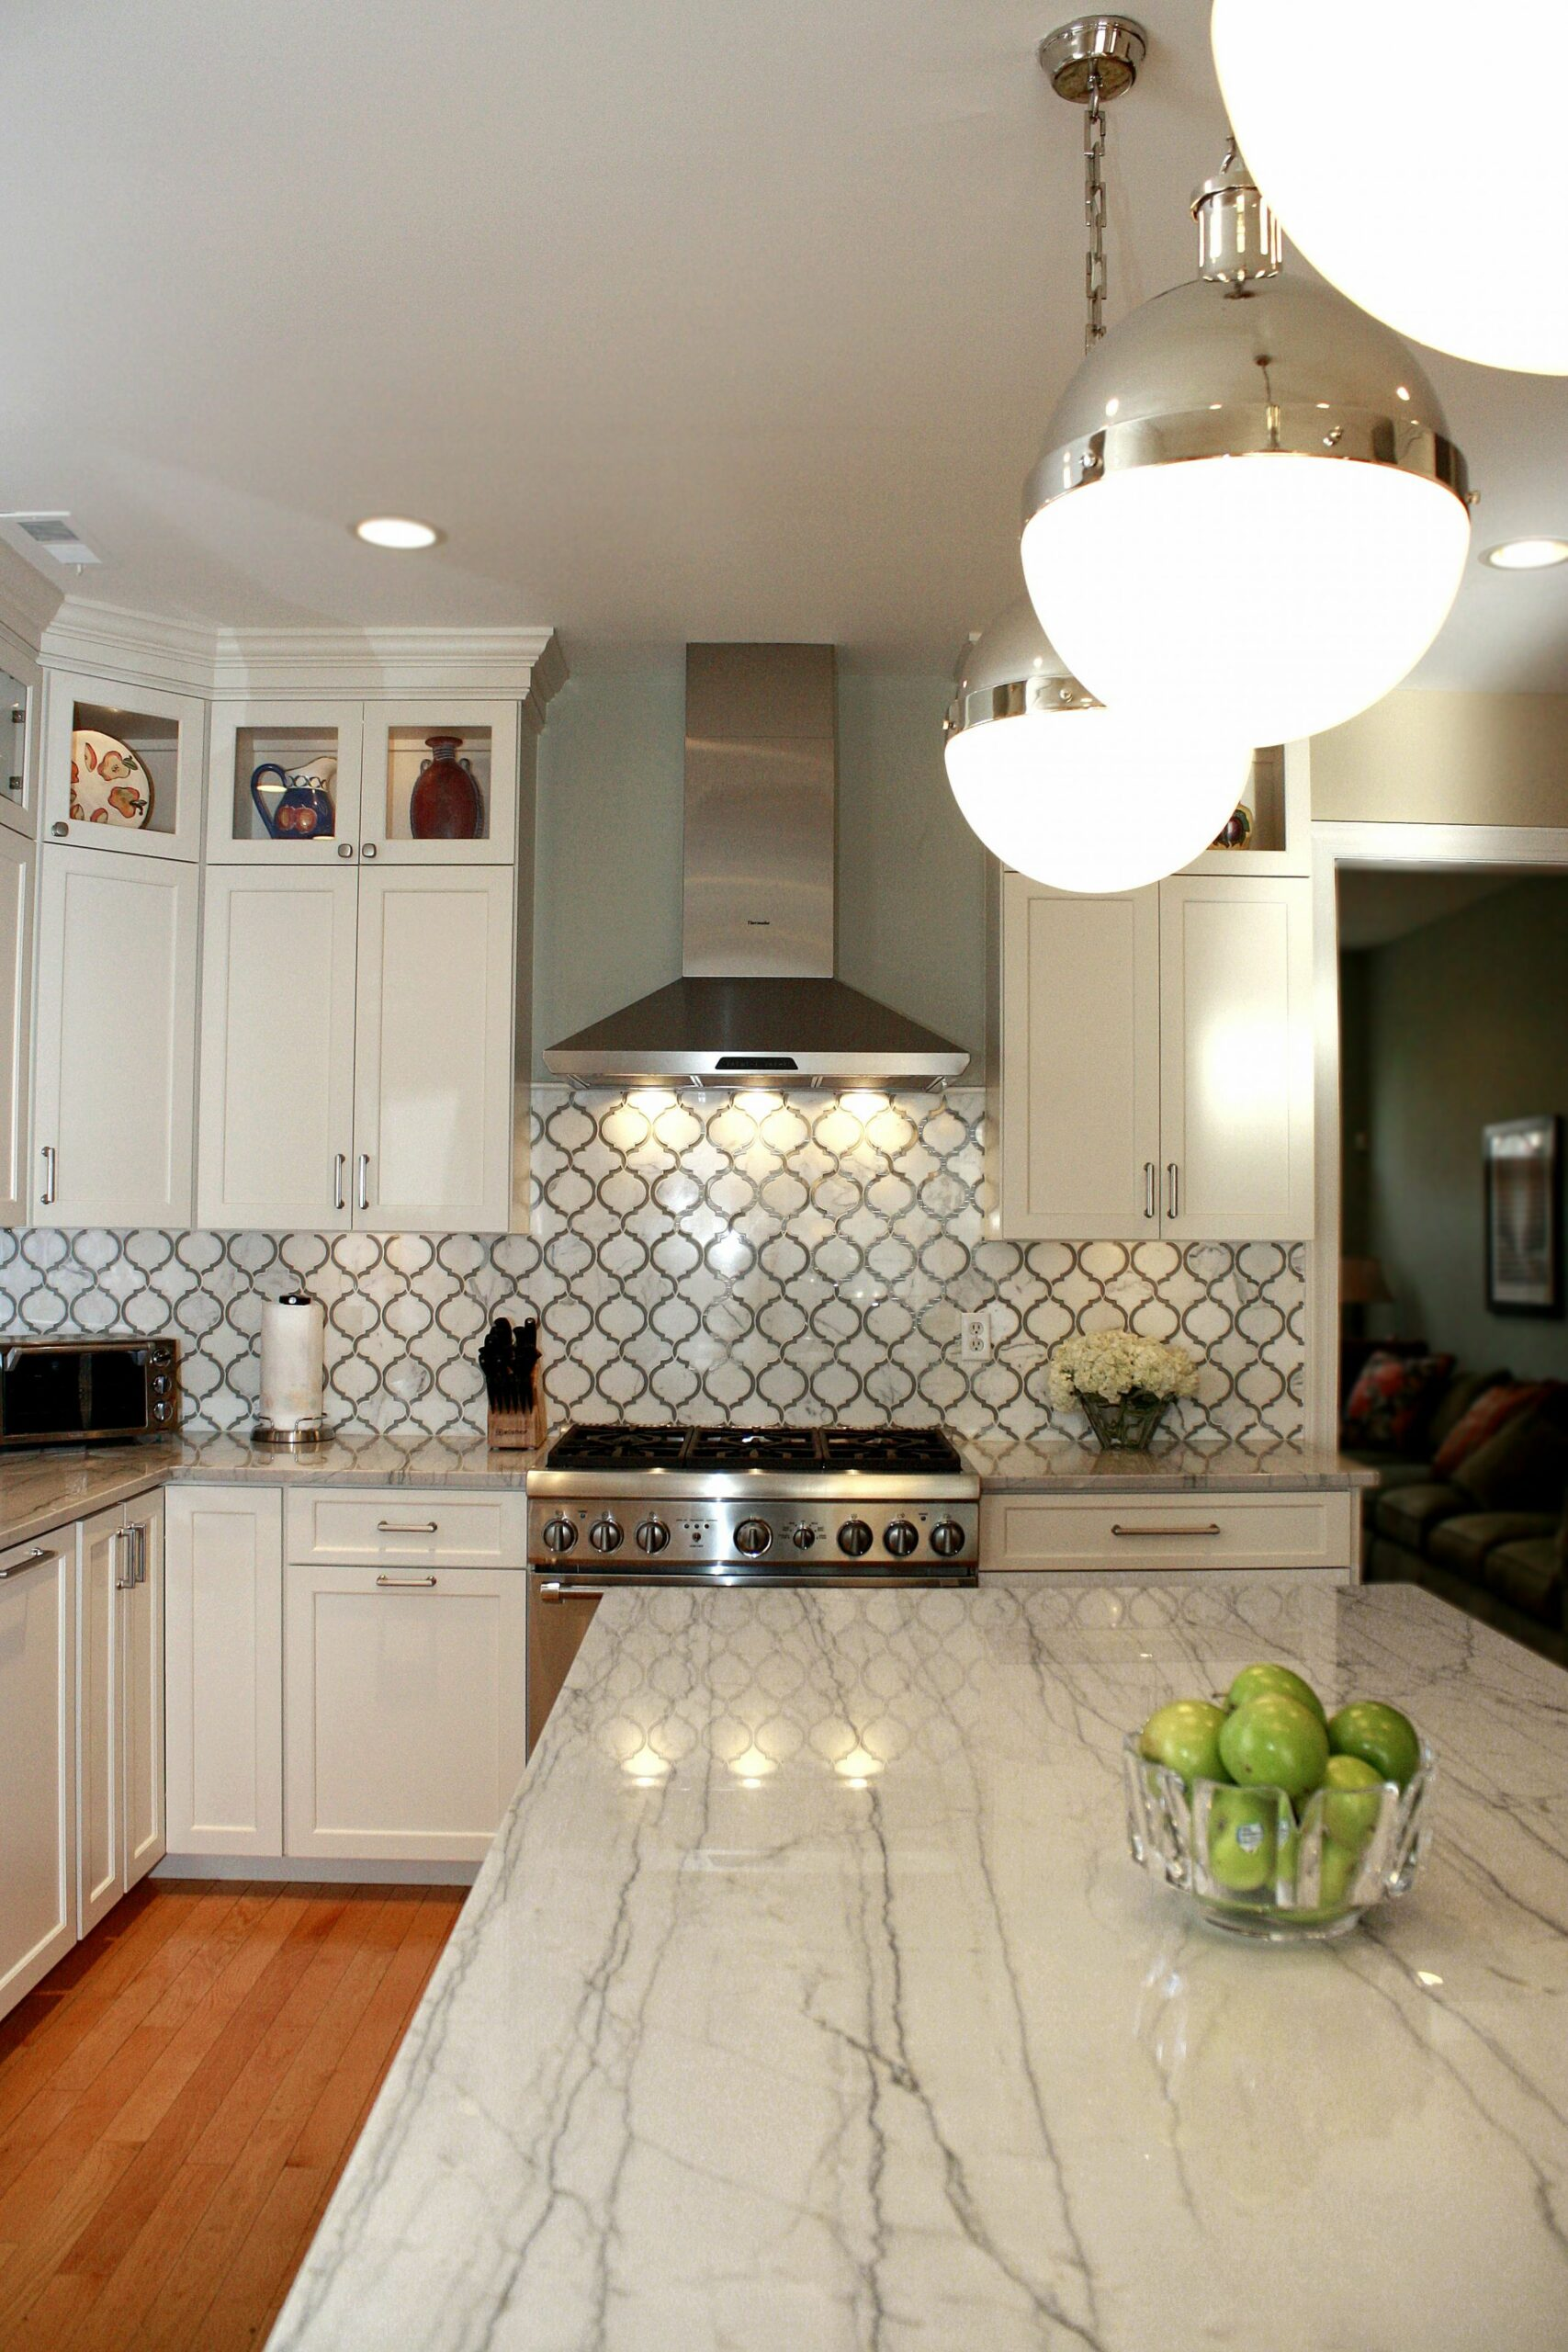 Explore our kitchen, bath and home galleries | Kitchen remodel ..